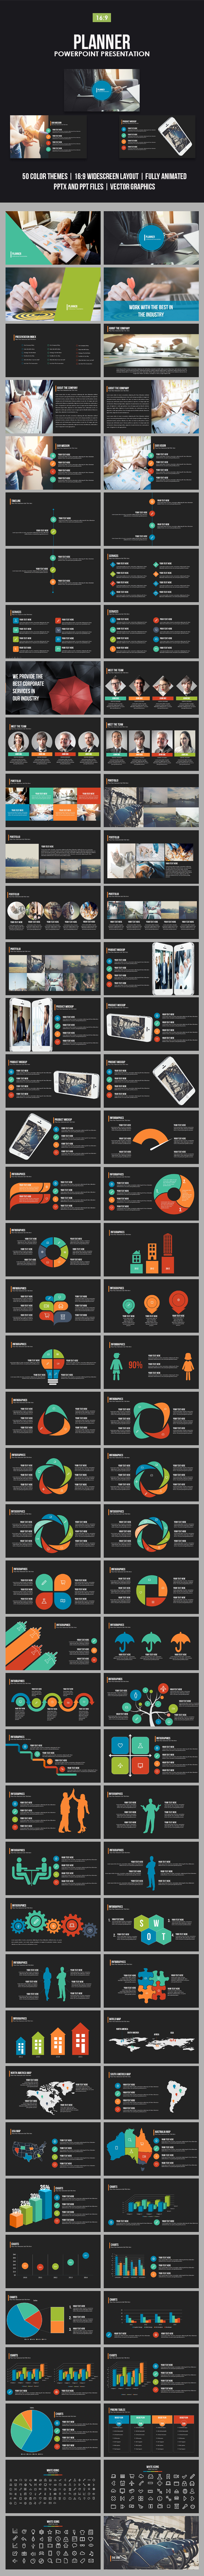 Planner Powerpoint Presentation Template - Business PowerPoint Templates